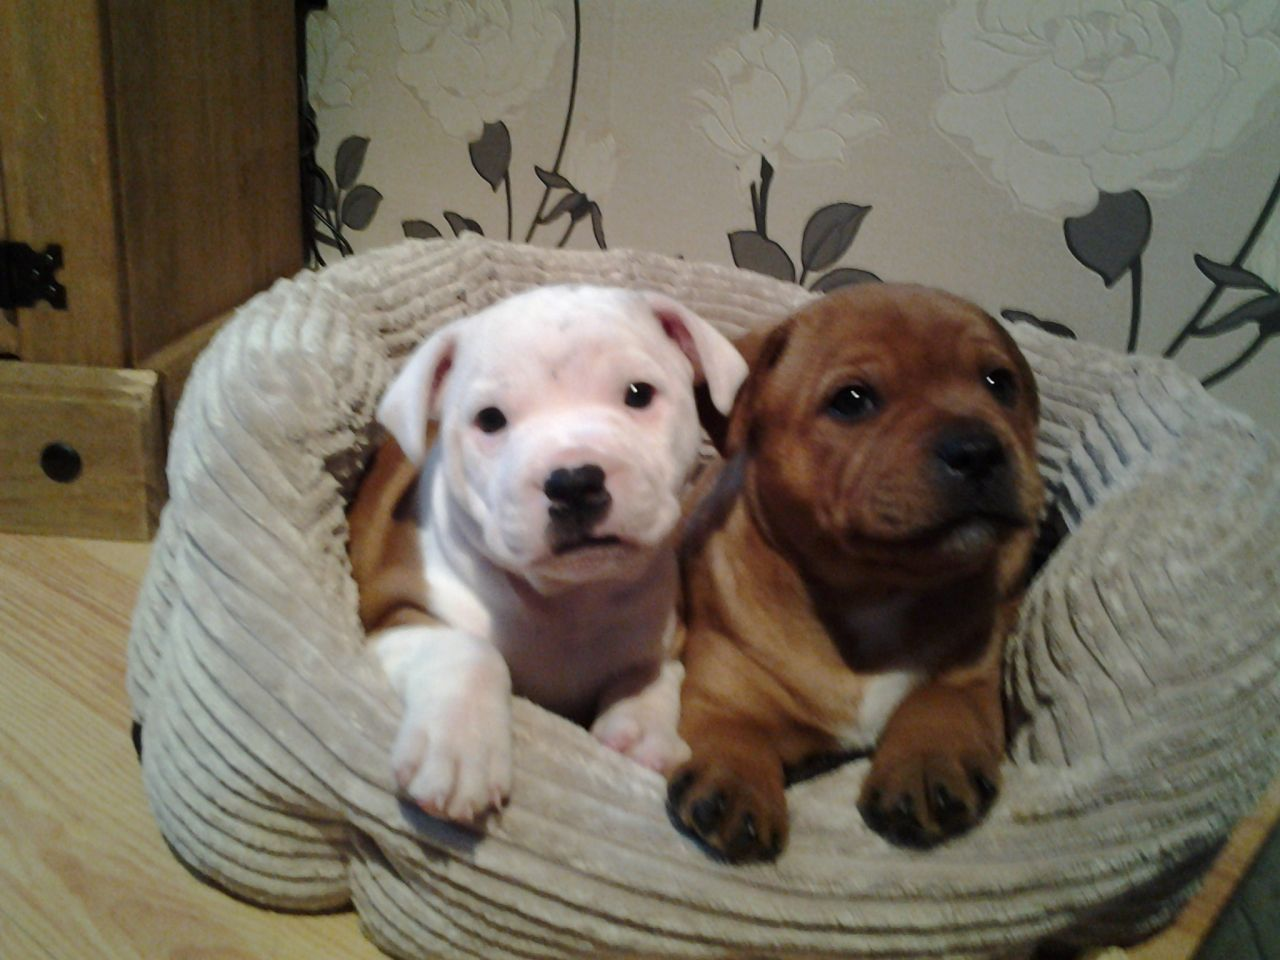 Staffordshire Bull Terrier Puppies: White Staffordshire Bull Terrier Puppies Breed